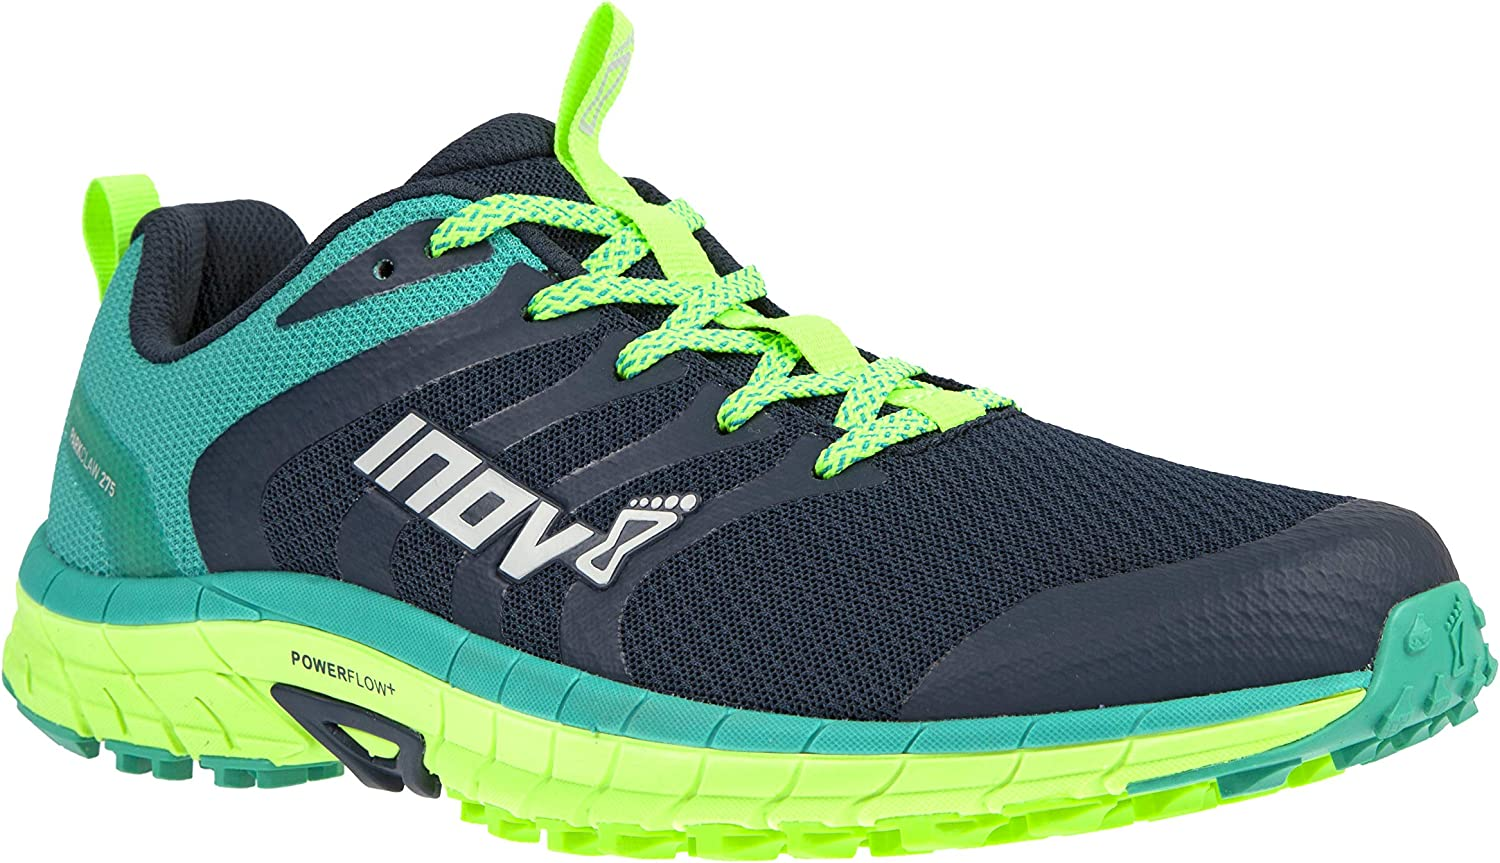 Inov-8 Womens Parkclaw 275 Trail Running Shoe Wide Fit Perfect Shoe to Transition from Road Running to Trail Running